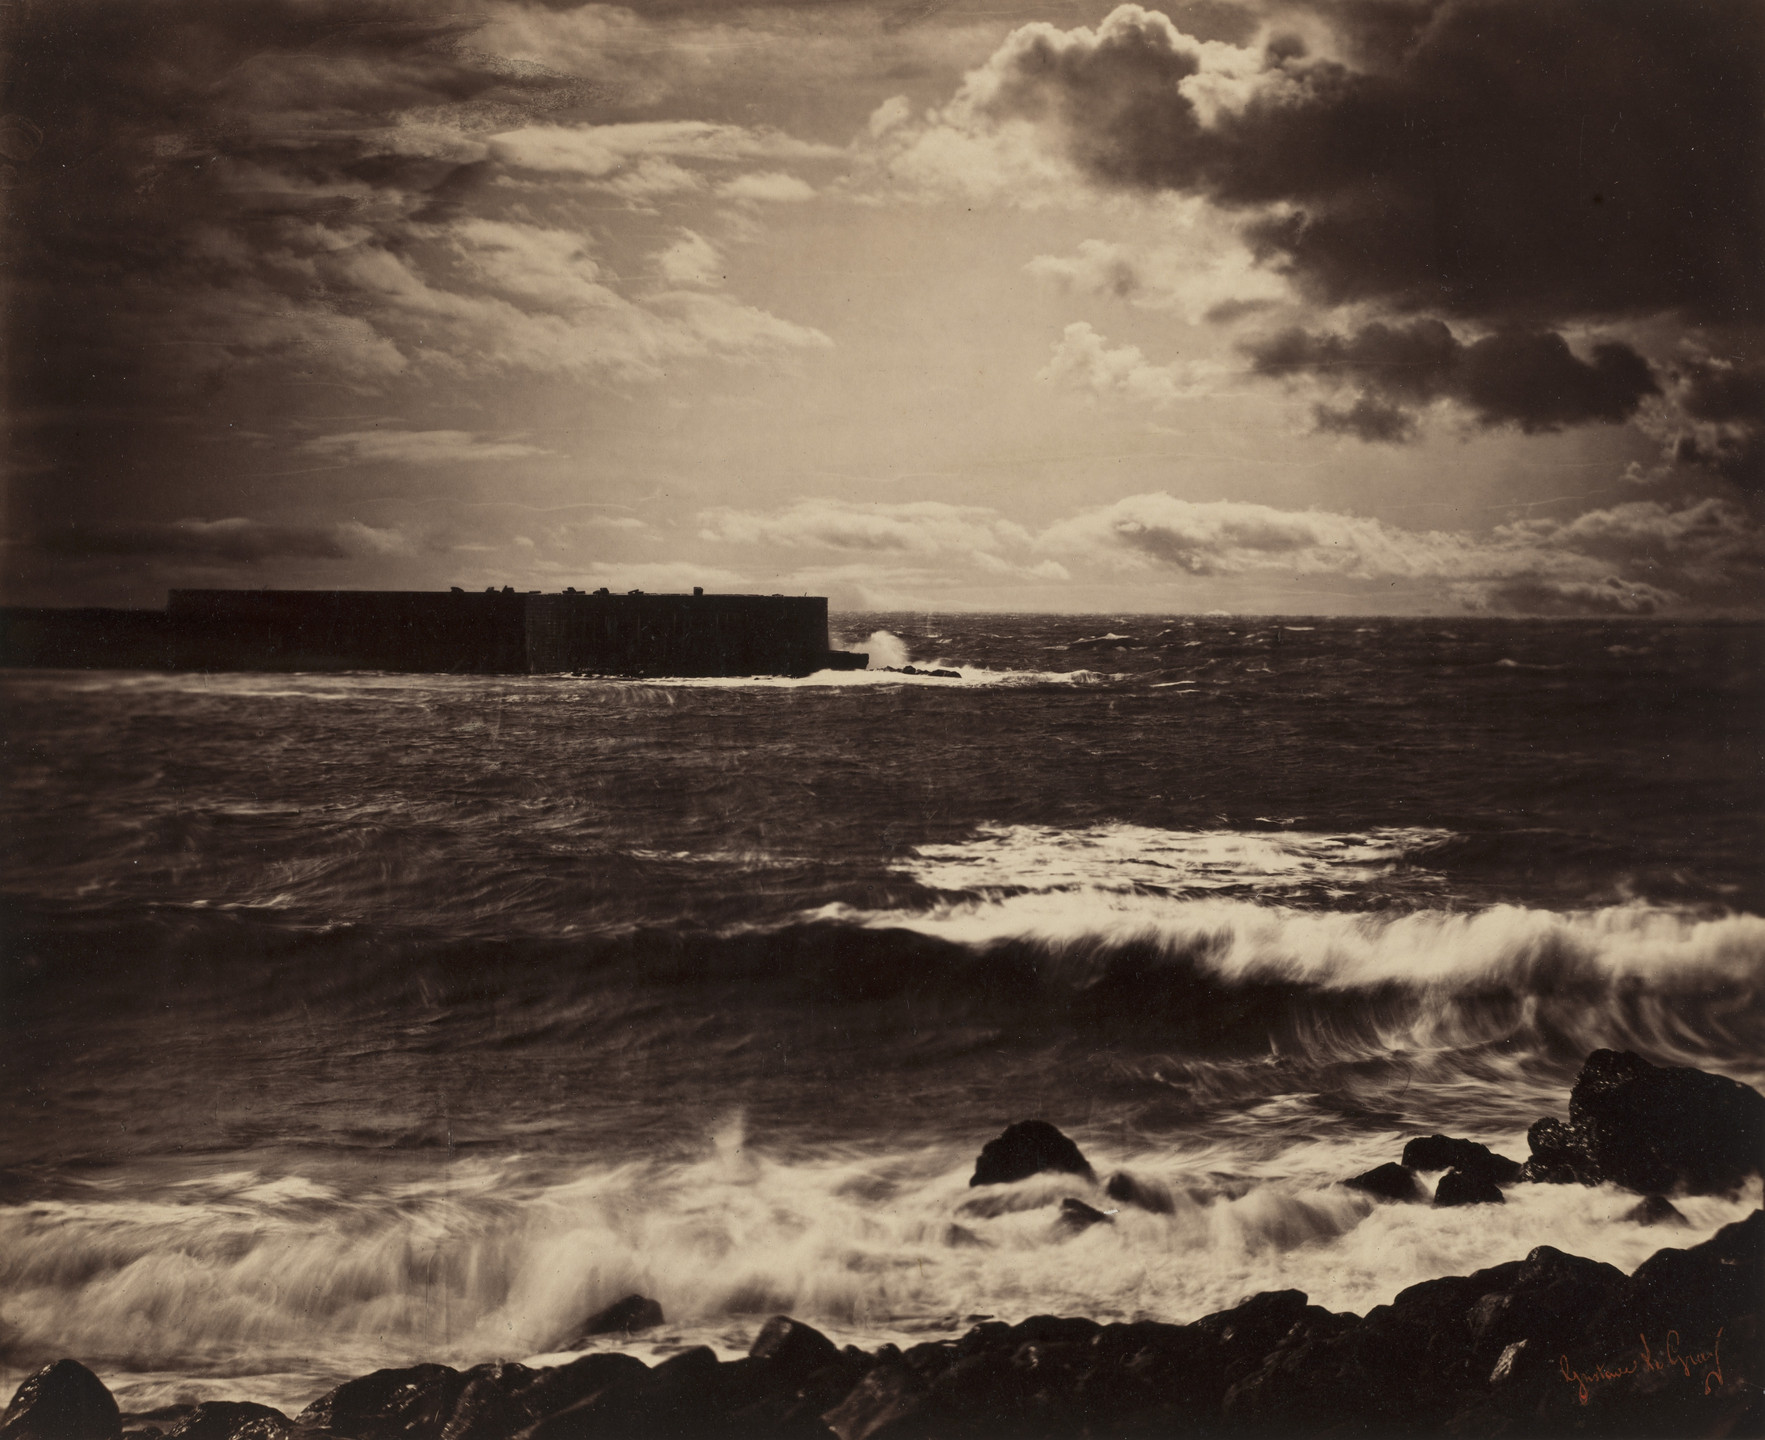 Gustave Le Gray. The Great Wave, Sète. 1856